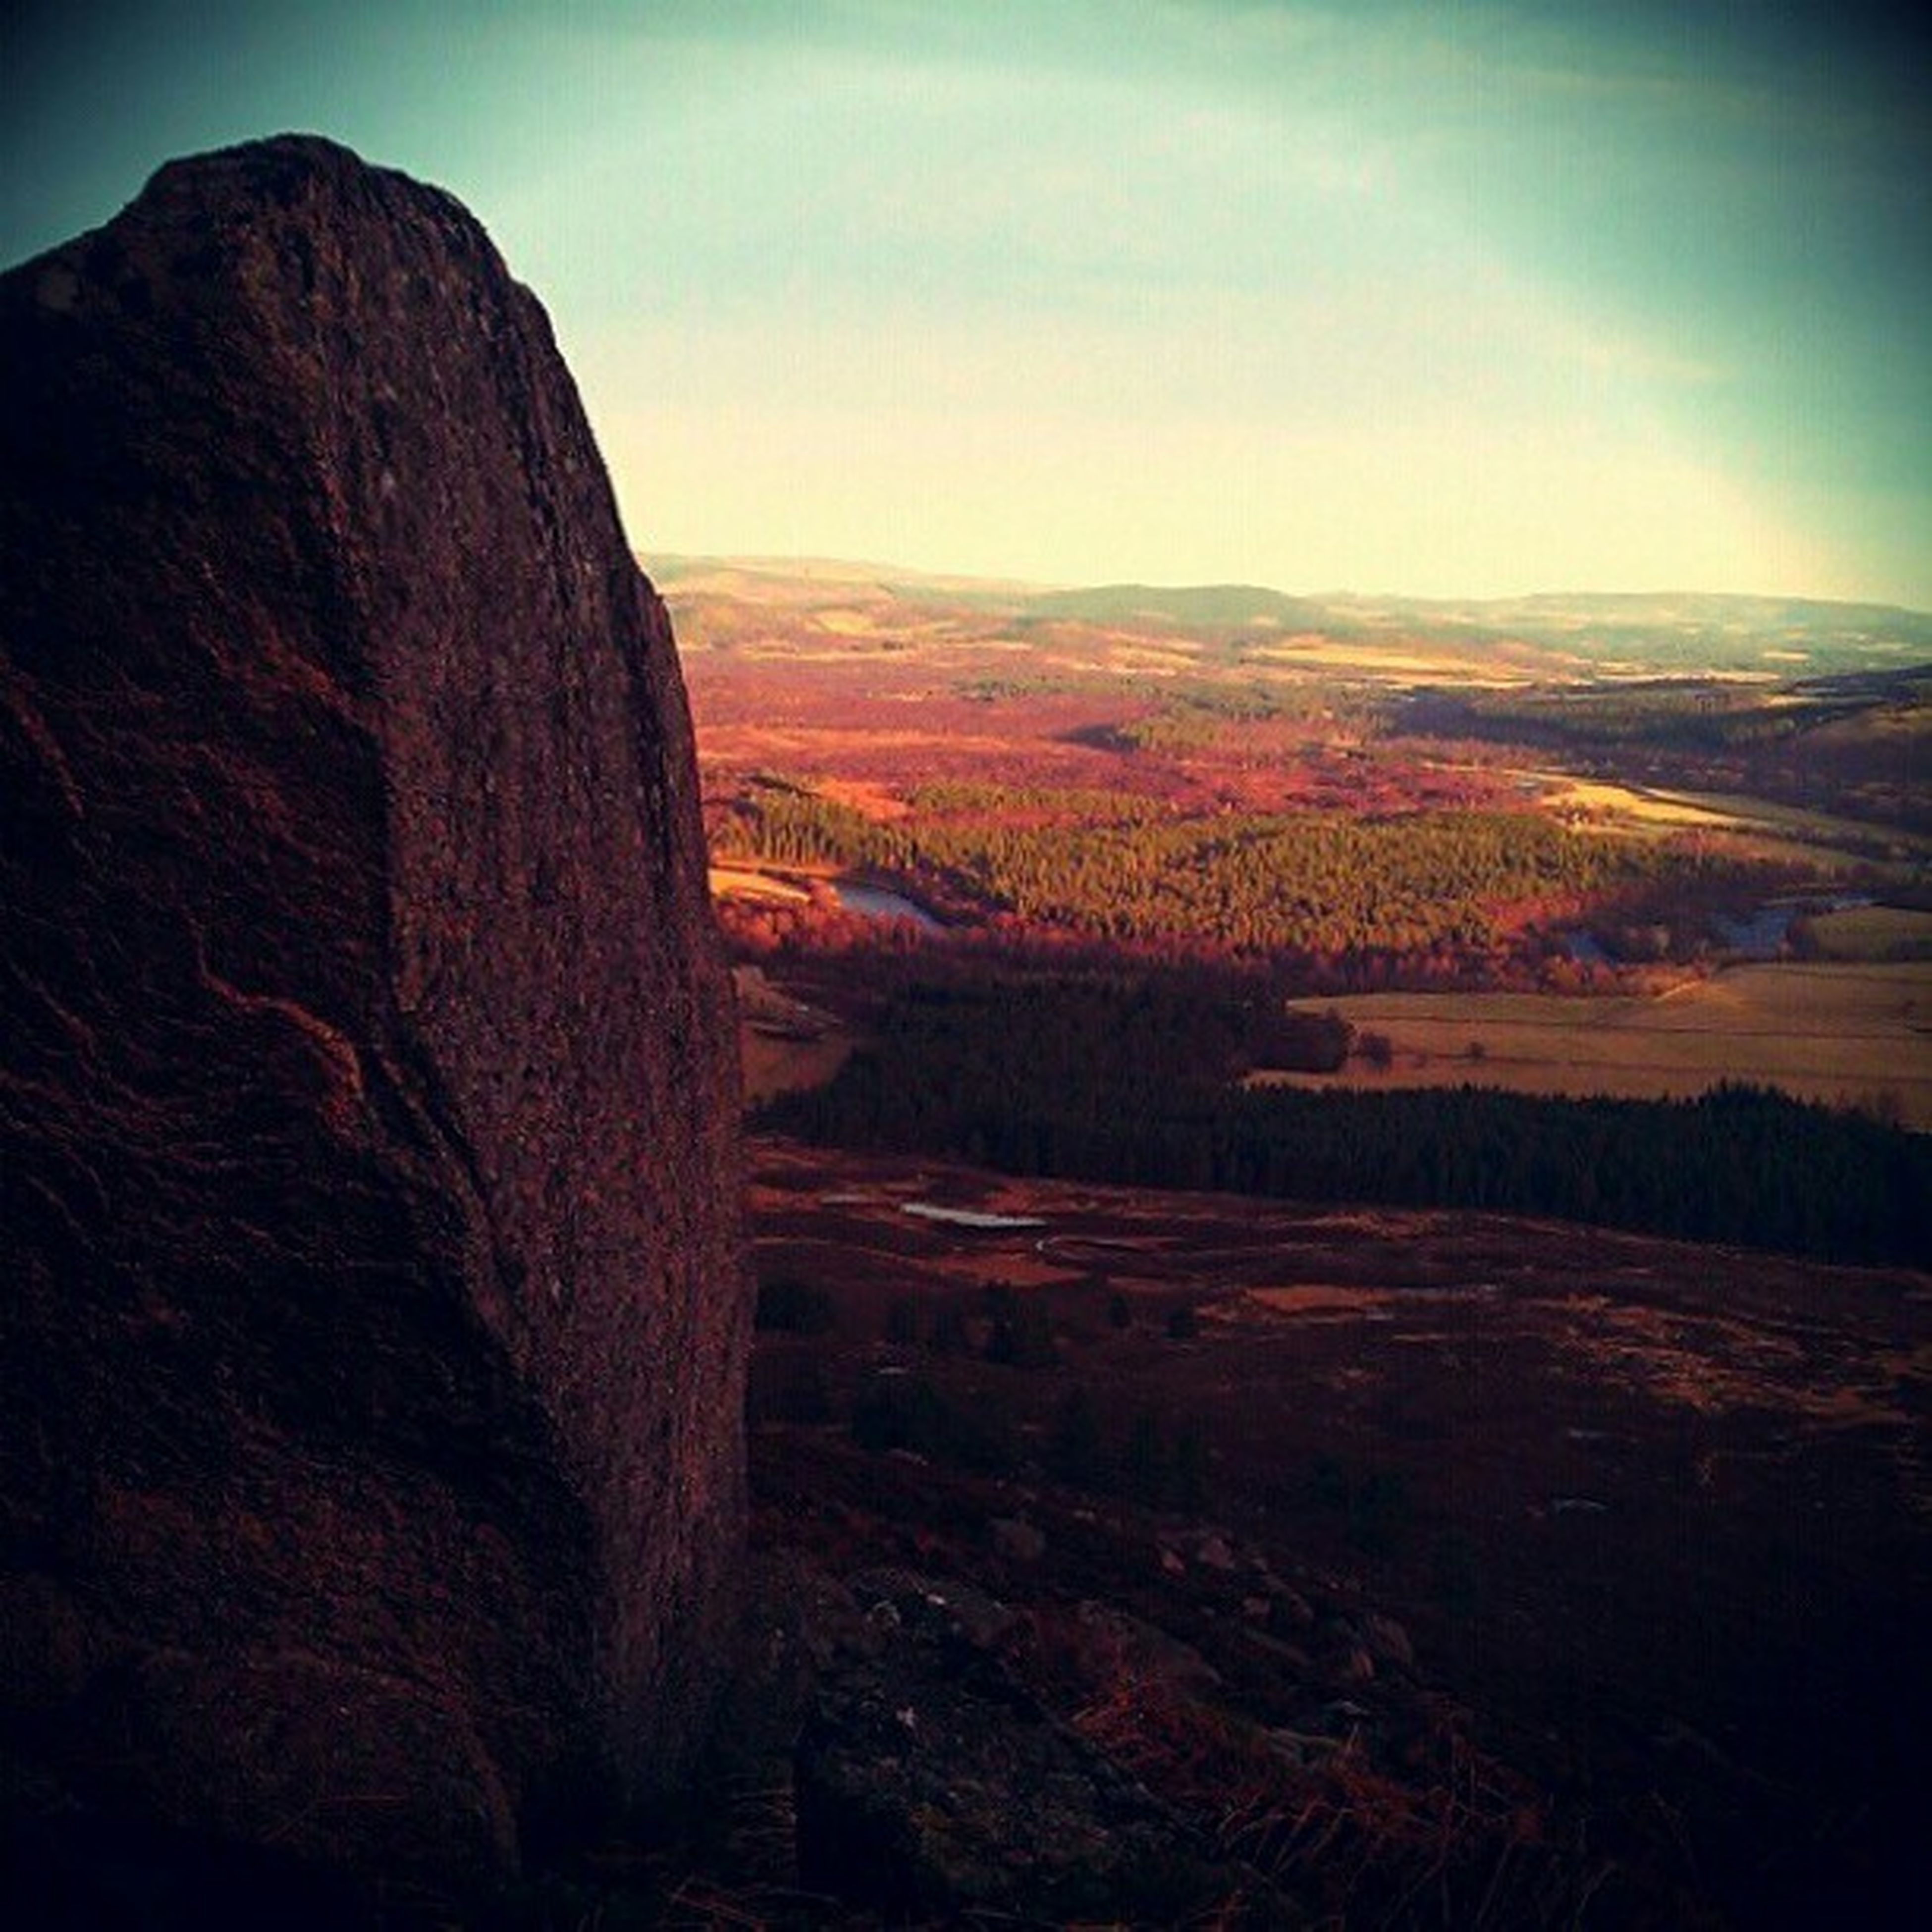 One big boulder and one beautiful view Mycamerastories Bouldering Boulderscotland Landscape scotland royaldeeside beautiful theview walkingthedog adventures